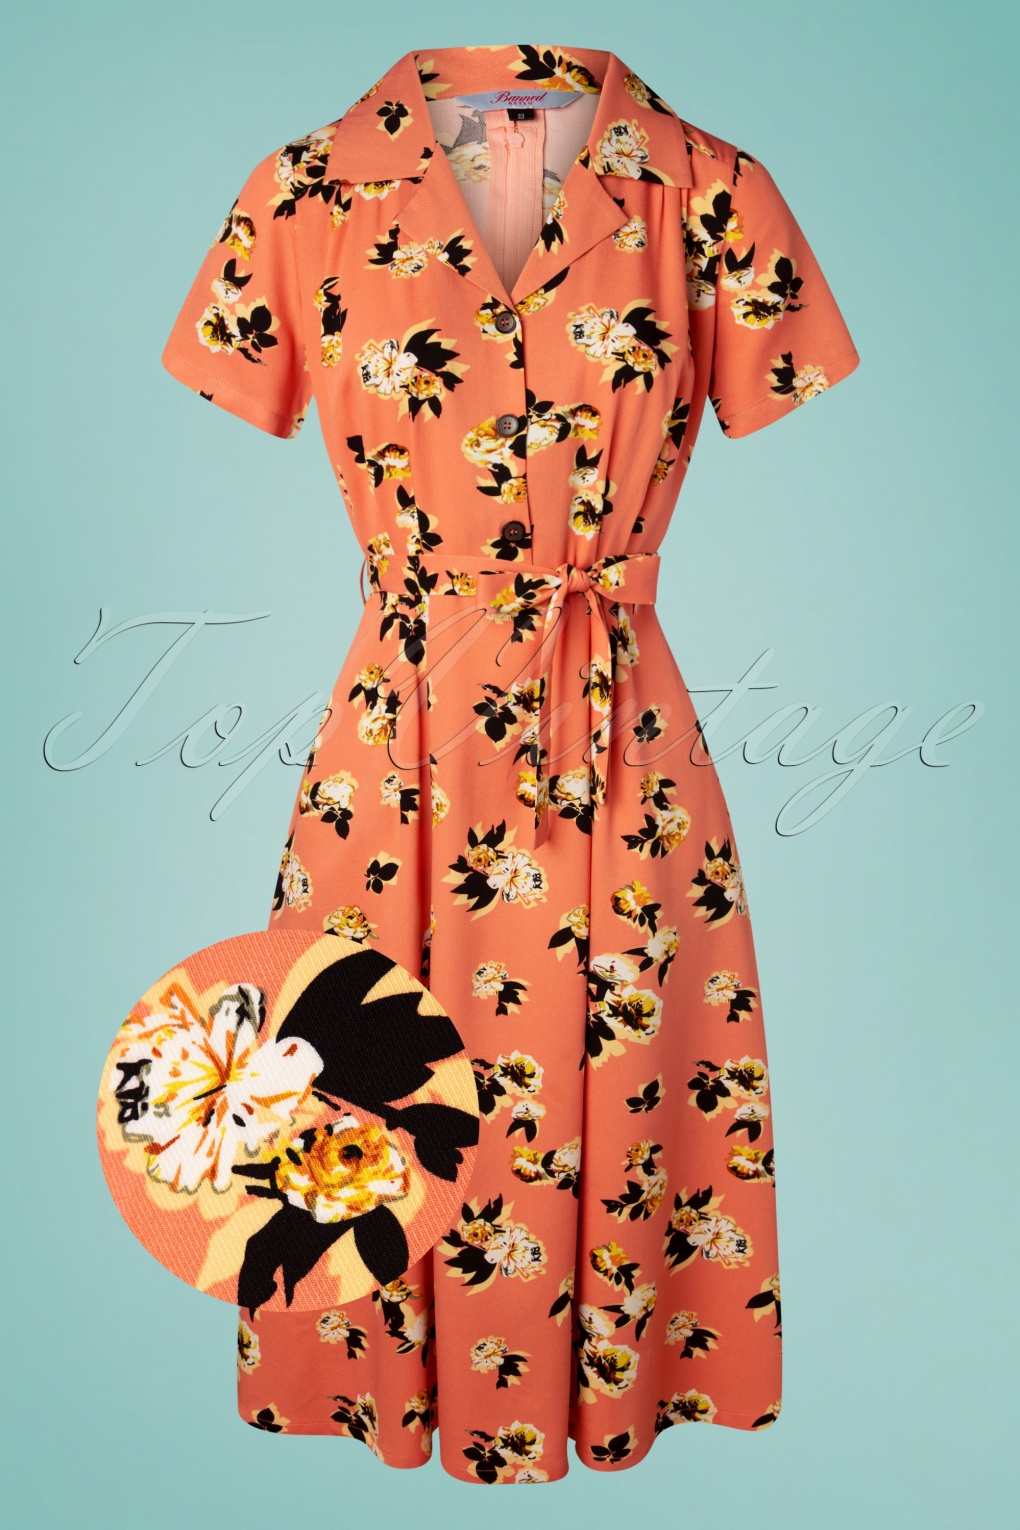 1940s Dress Styles 40s Sweet Tropicana Swing Dress in Peachy Orange £24.95 AT vintagedancer.com